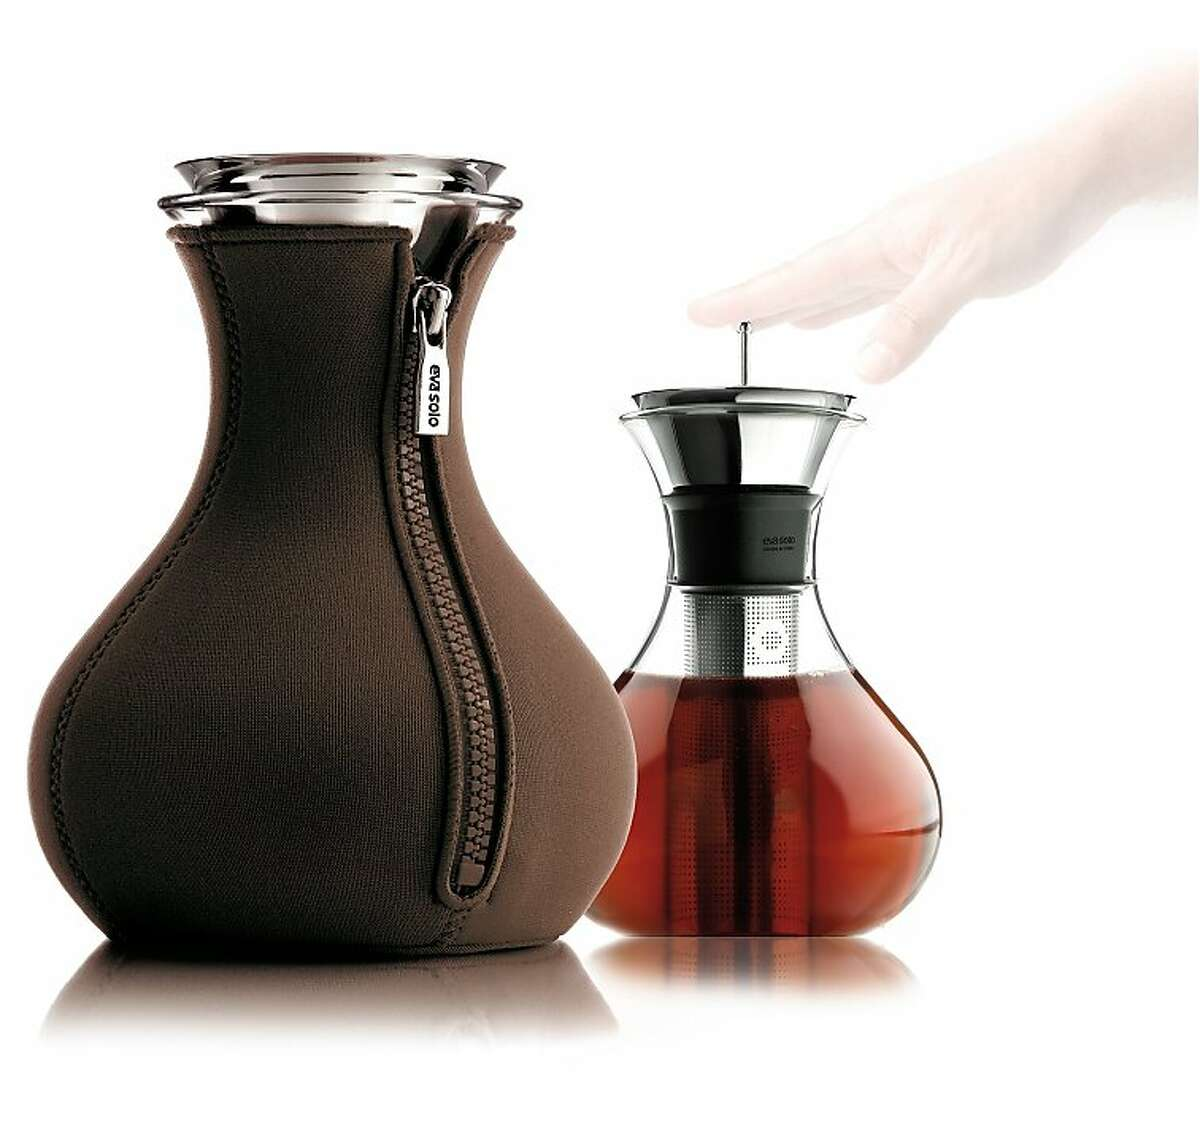 A multi-tasker teamaker that is a carafe and can wear a neoprene zipper cover, is from Eva Solo of Copenhagen.